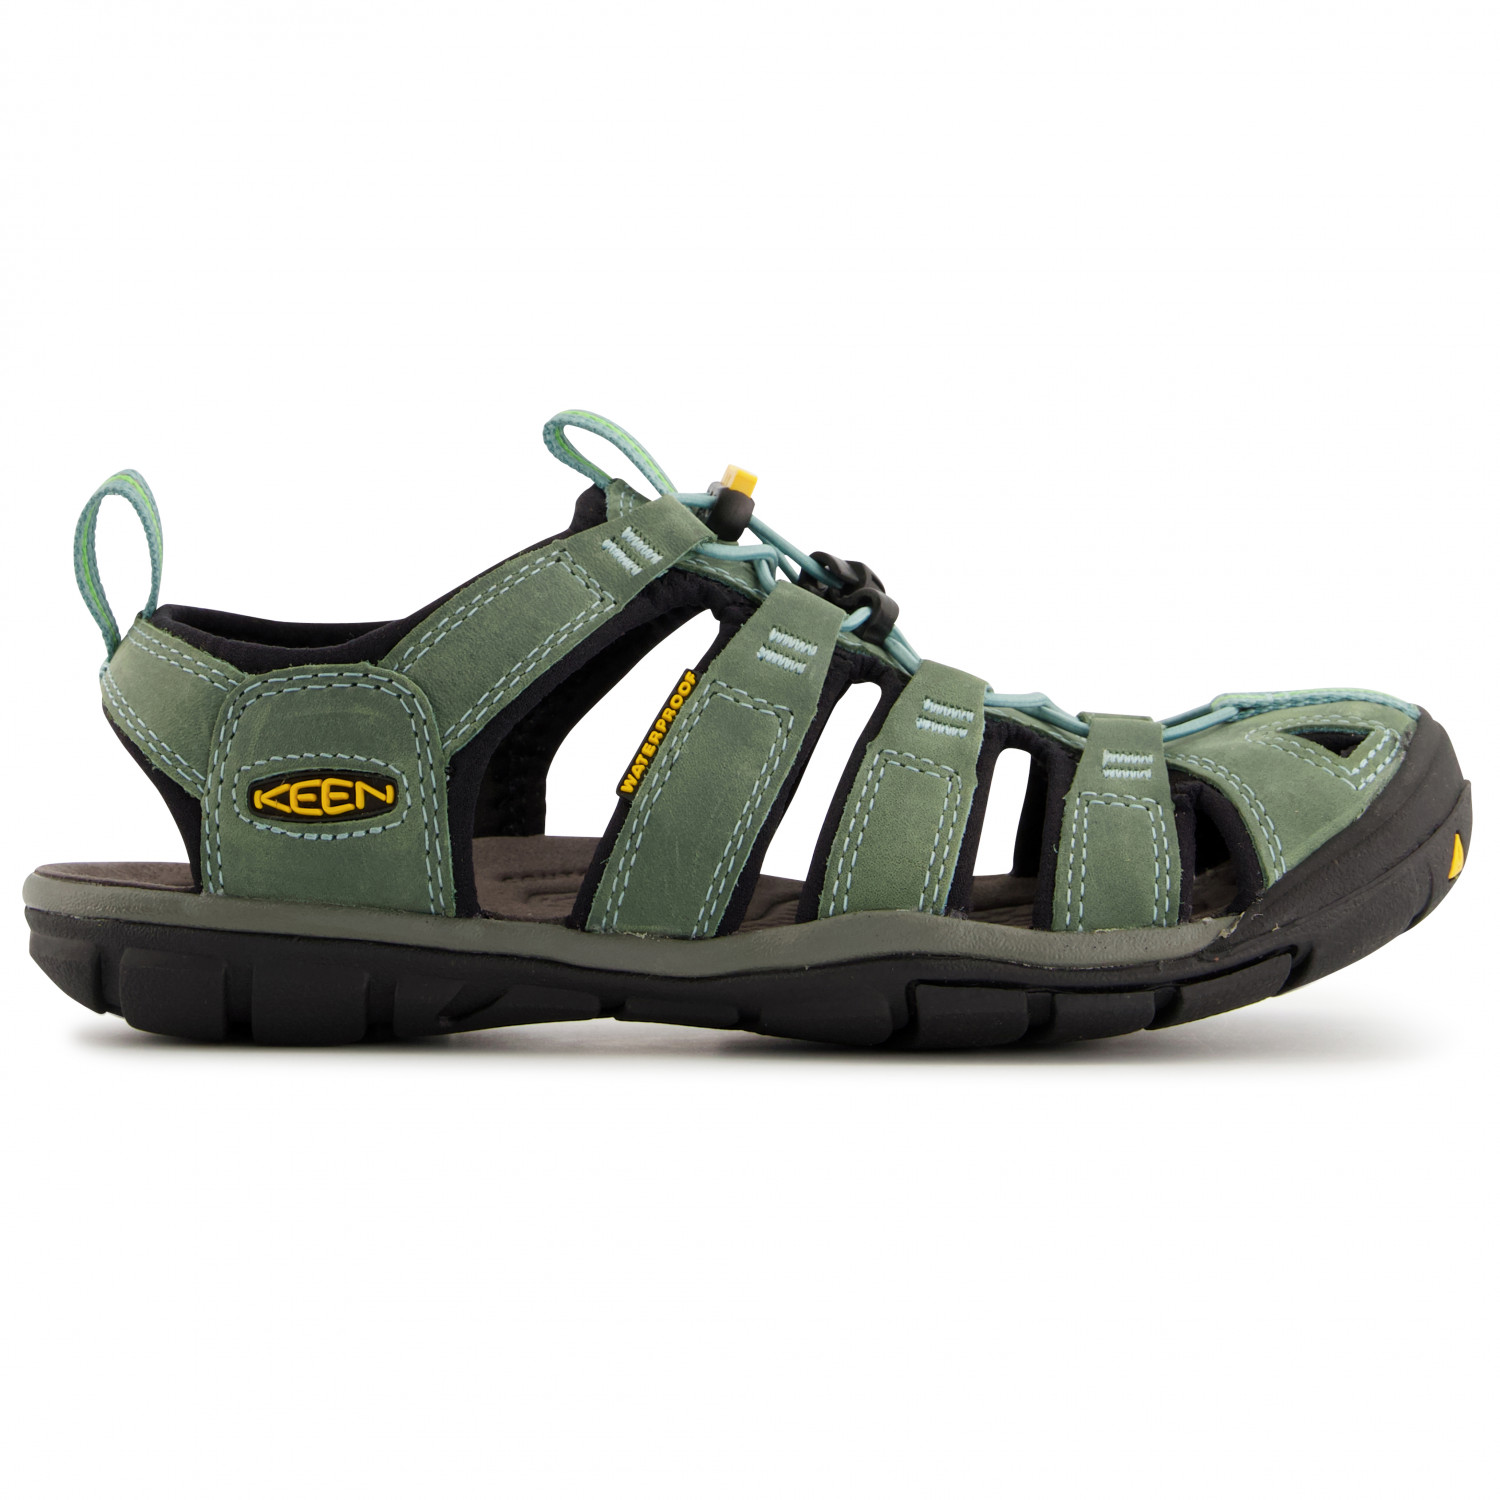 Keen Clearwater CNX Leather - Sandals Women's | Free UK Delivery | Alpinetrek.co.uk